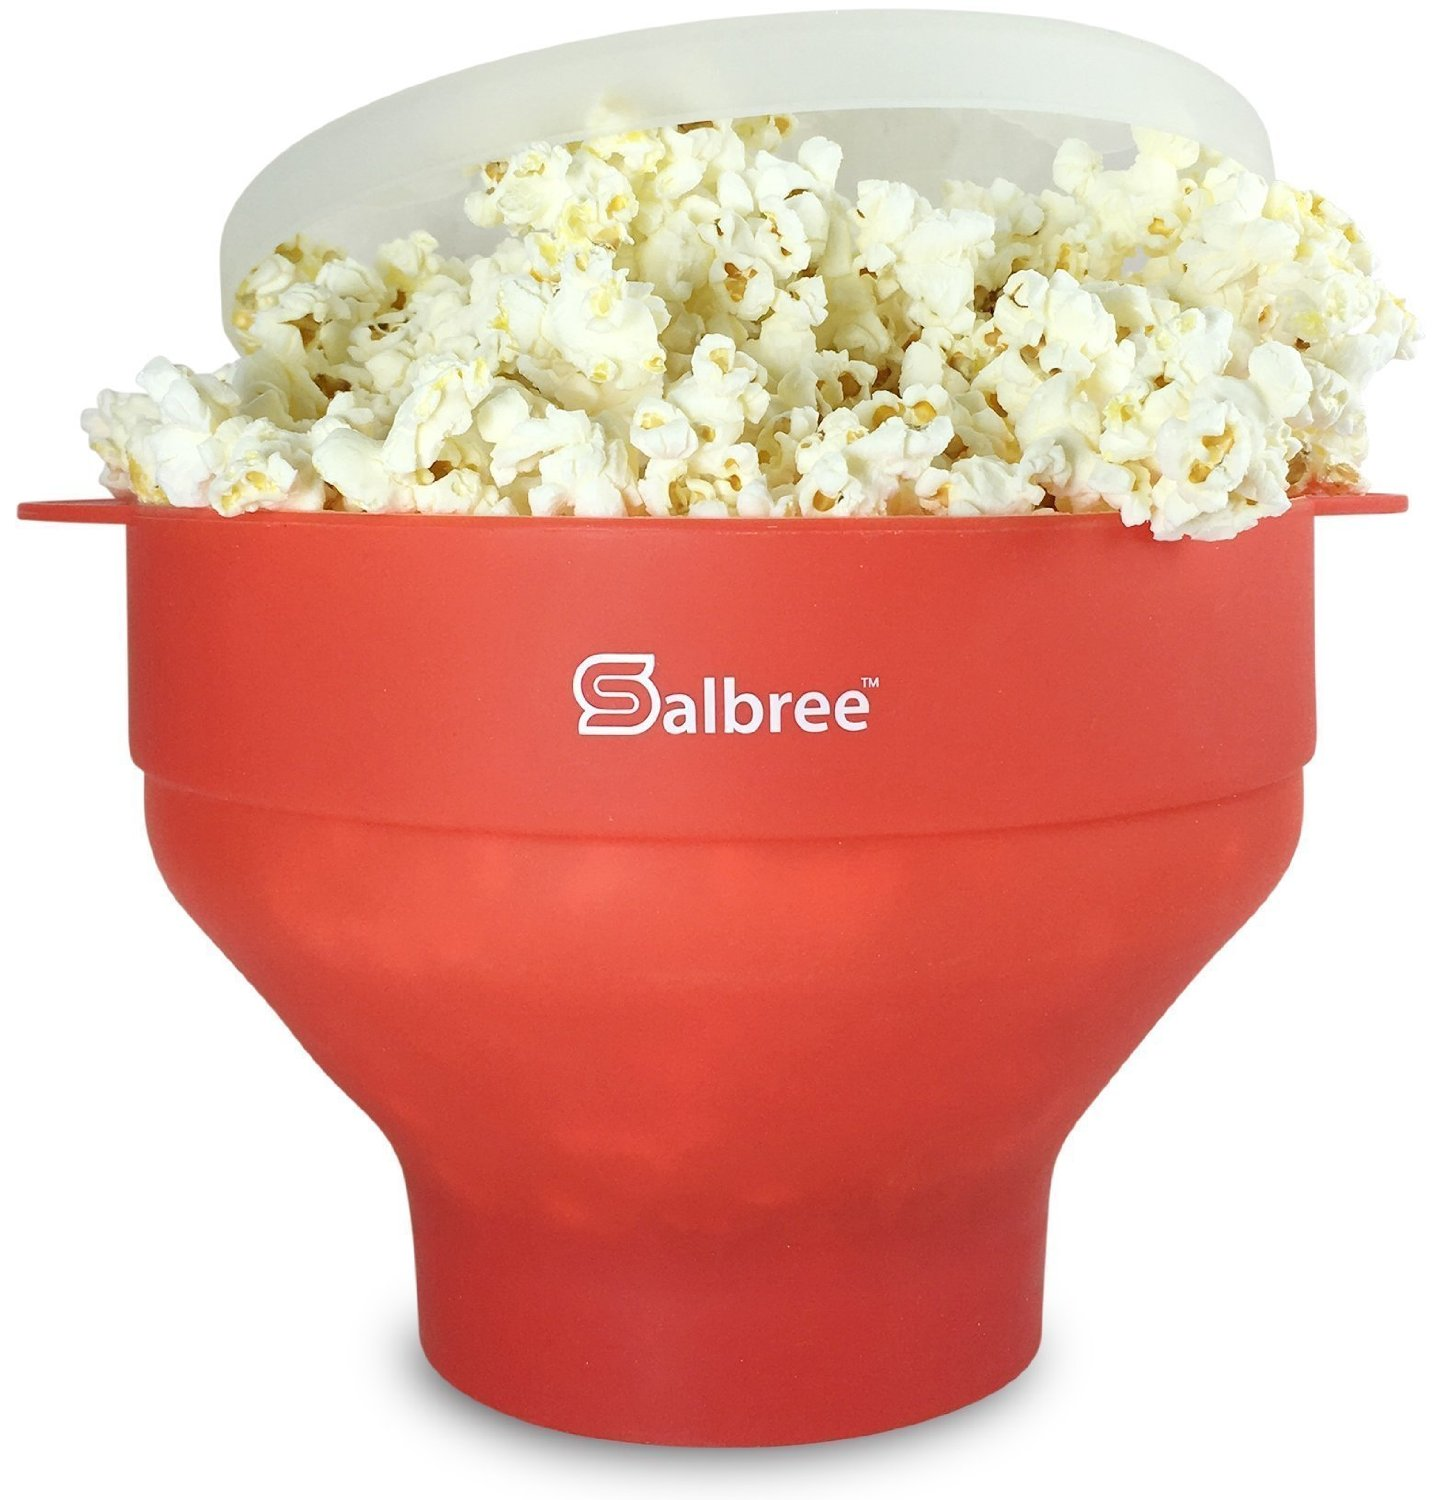 Salbree Microwave Popcorn Popper – Air Popper